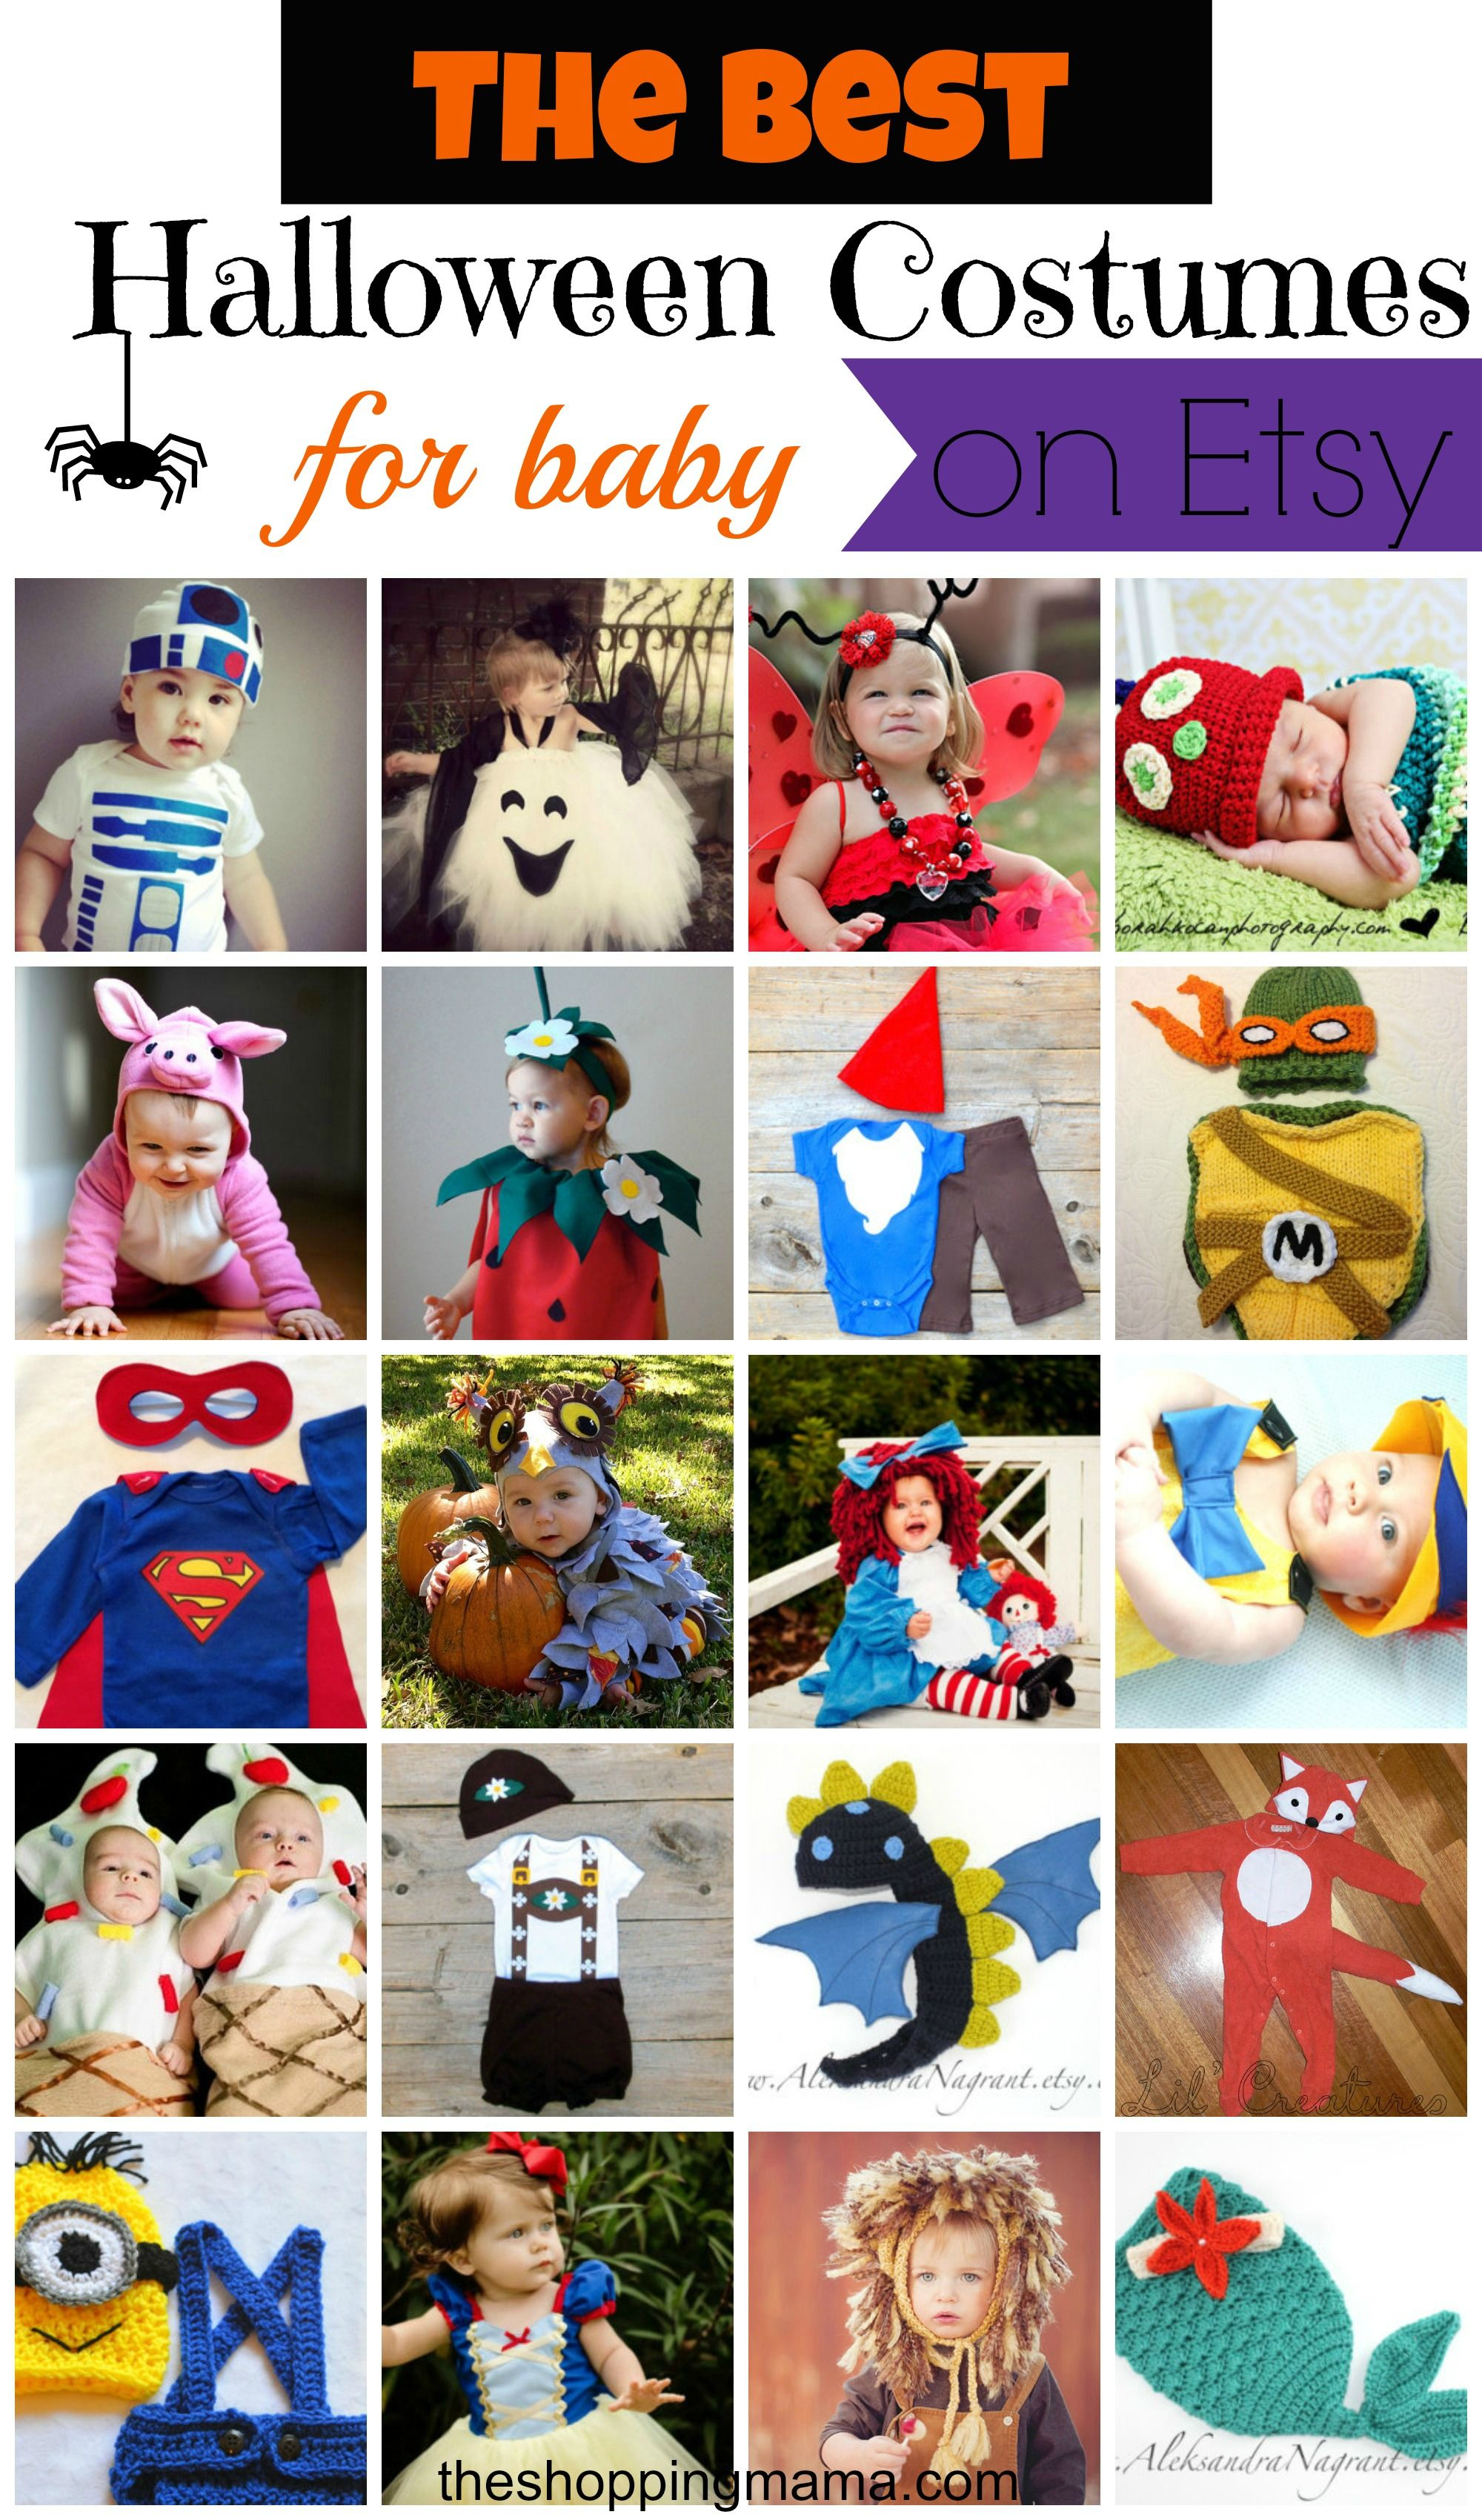 The Best Halloween Costumes for Baby (on Etsy Diy